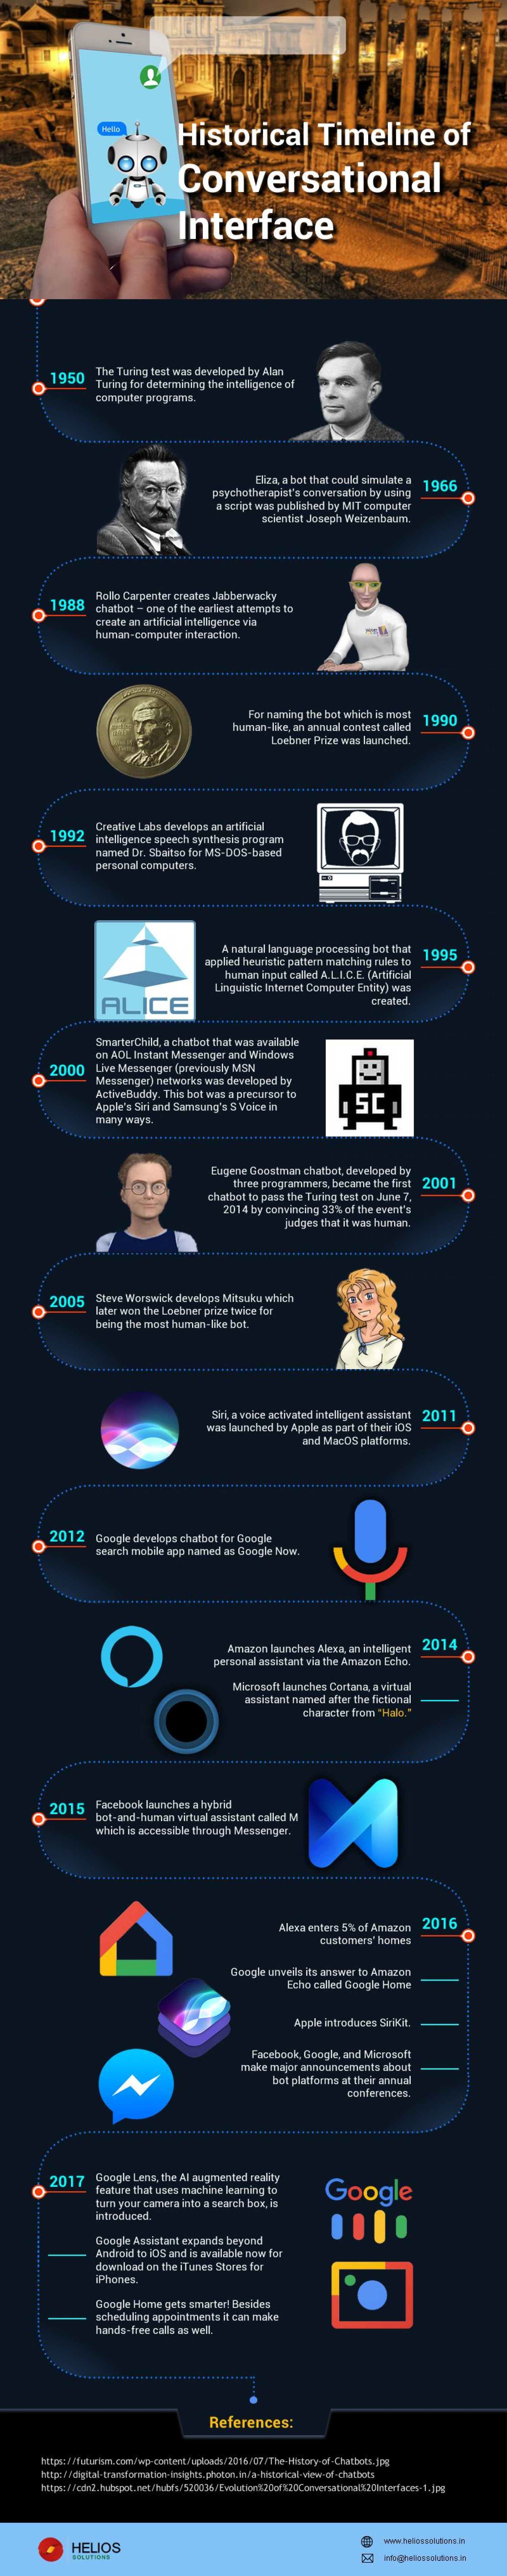 Historical Timeline of Conversational Interface Infographic